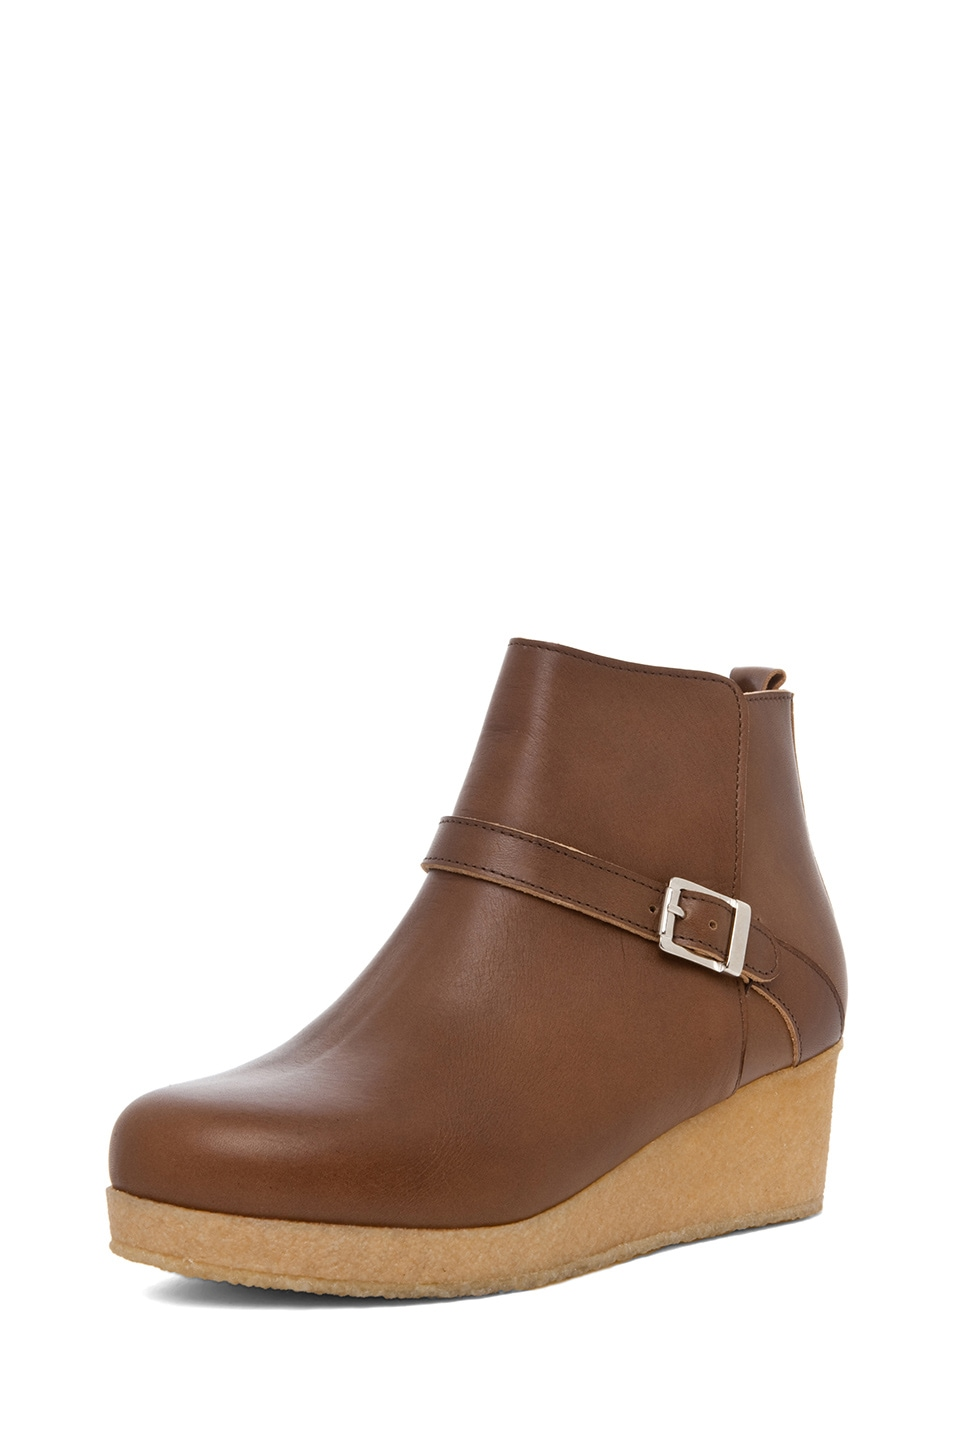 Image 2 of A.P.C. Boots Basse in Noisette